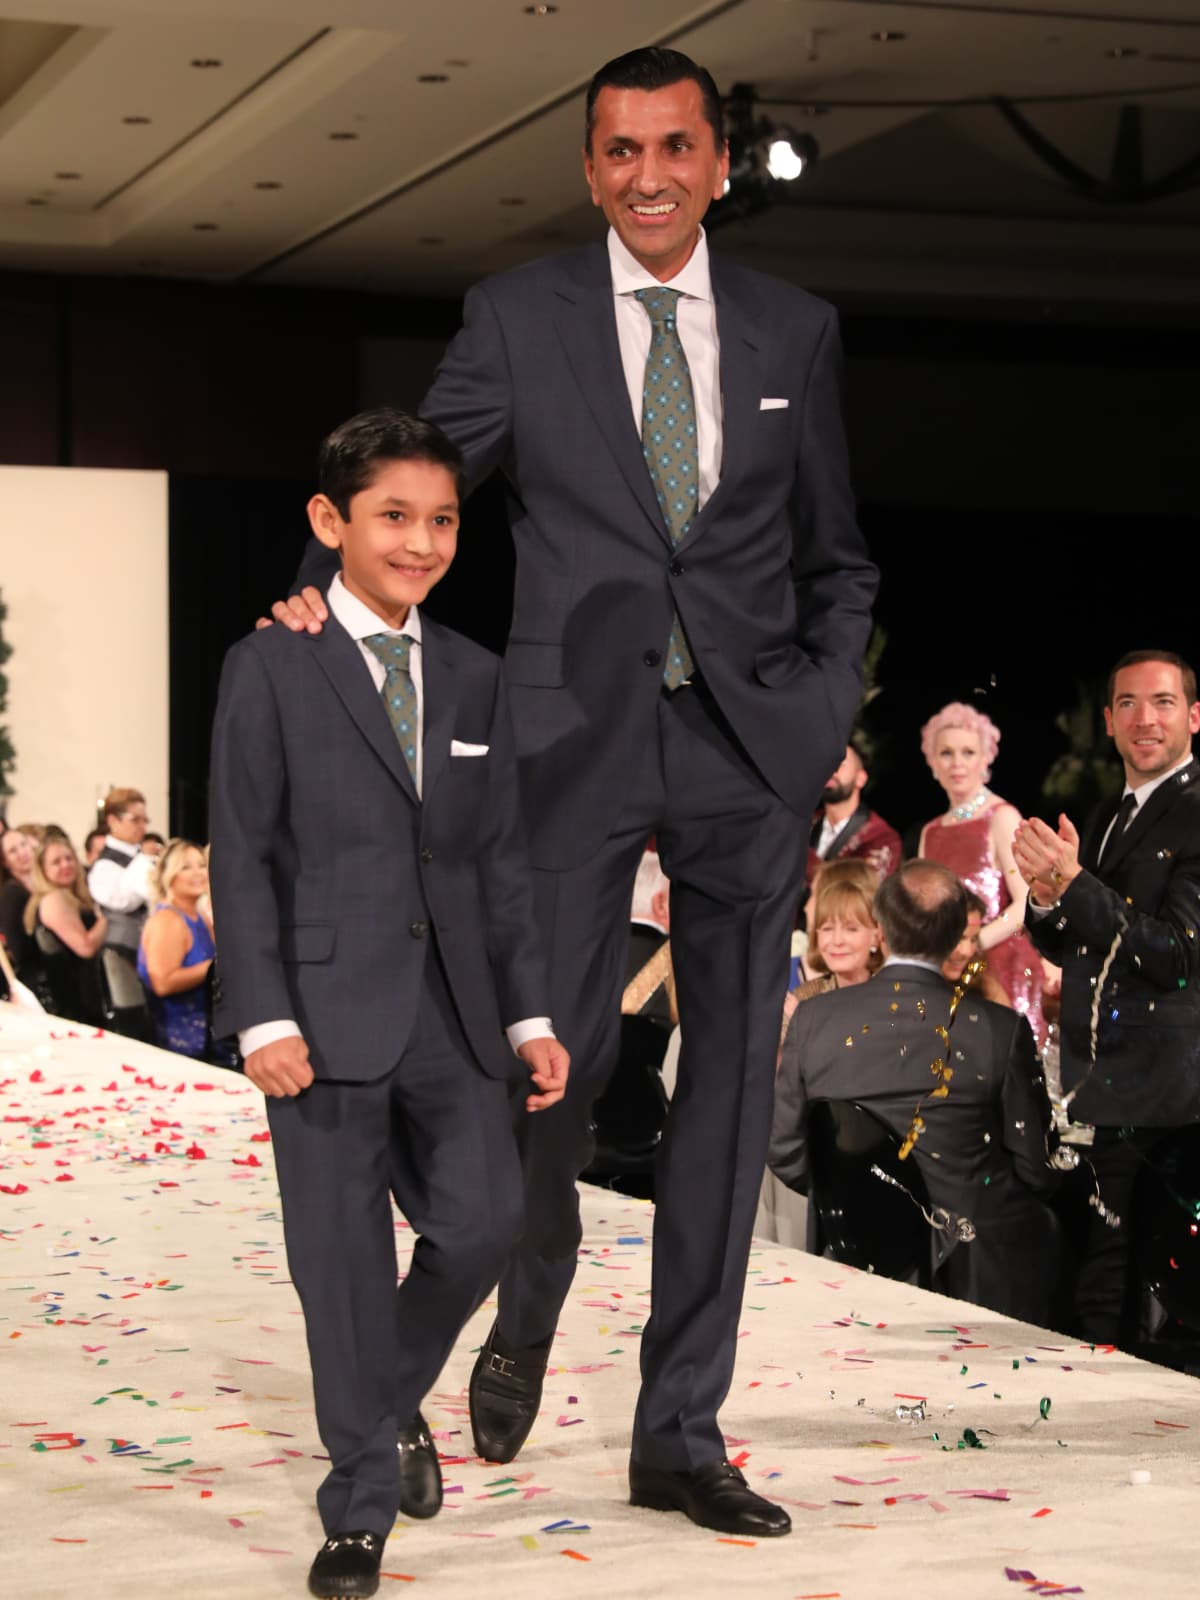 Shaan and Ajay Khurana at Festari Gala